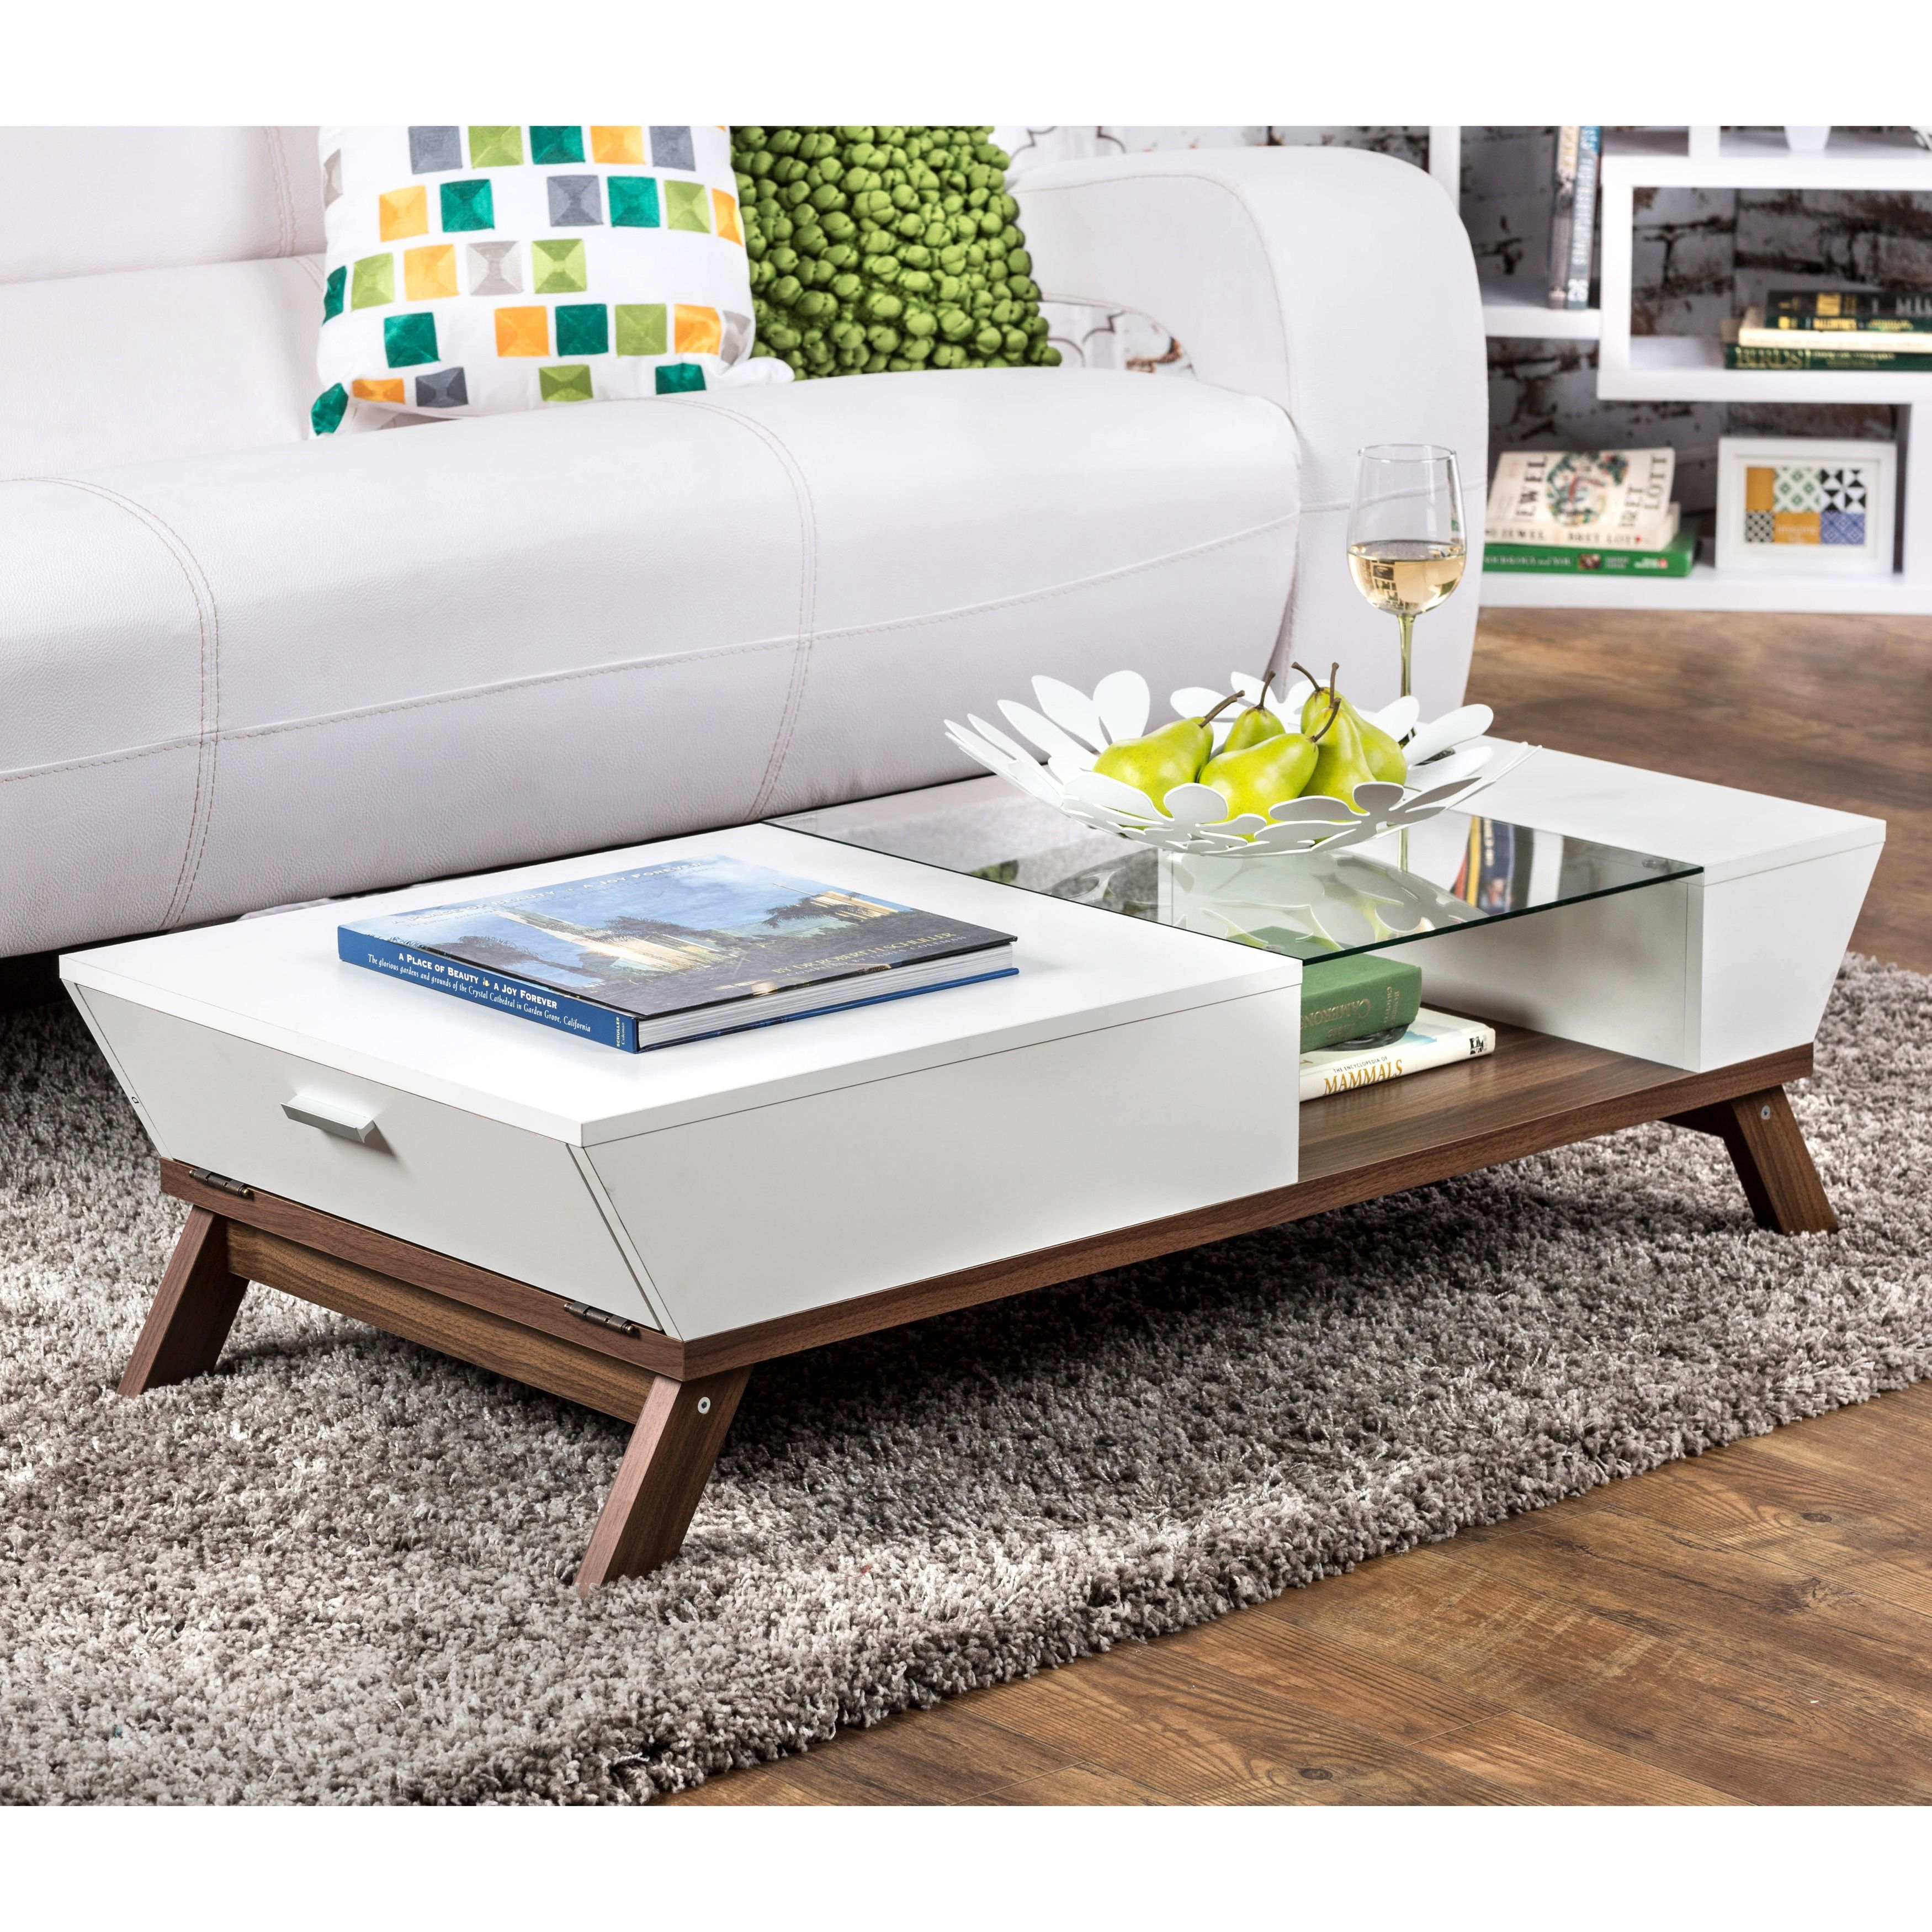 Unique Coffee Tables Furniture: This Kress Coffee Table Features A Sleek Finish With A